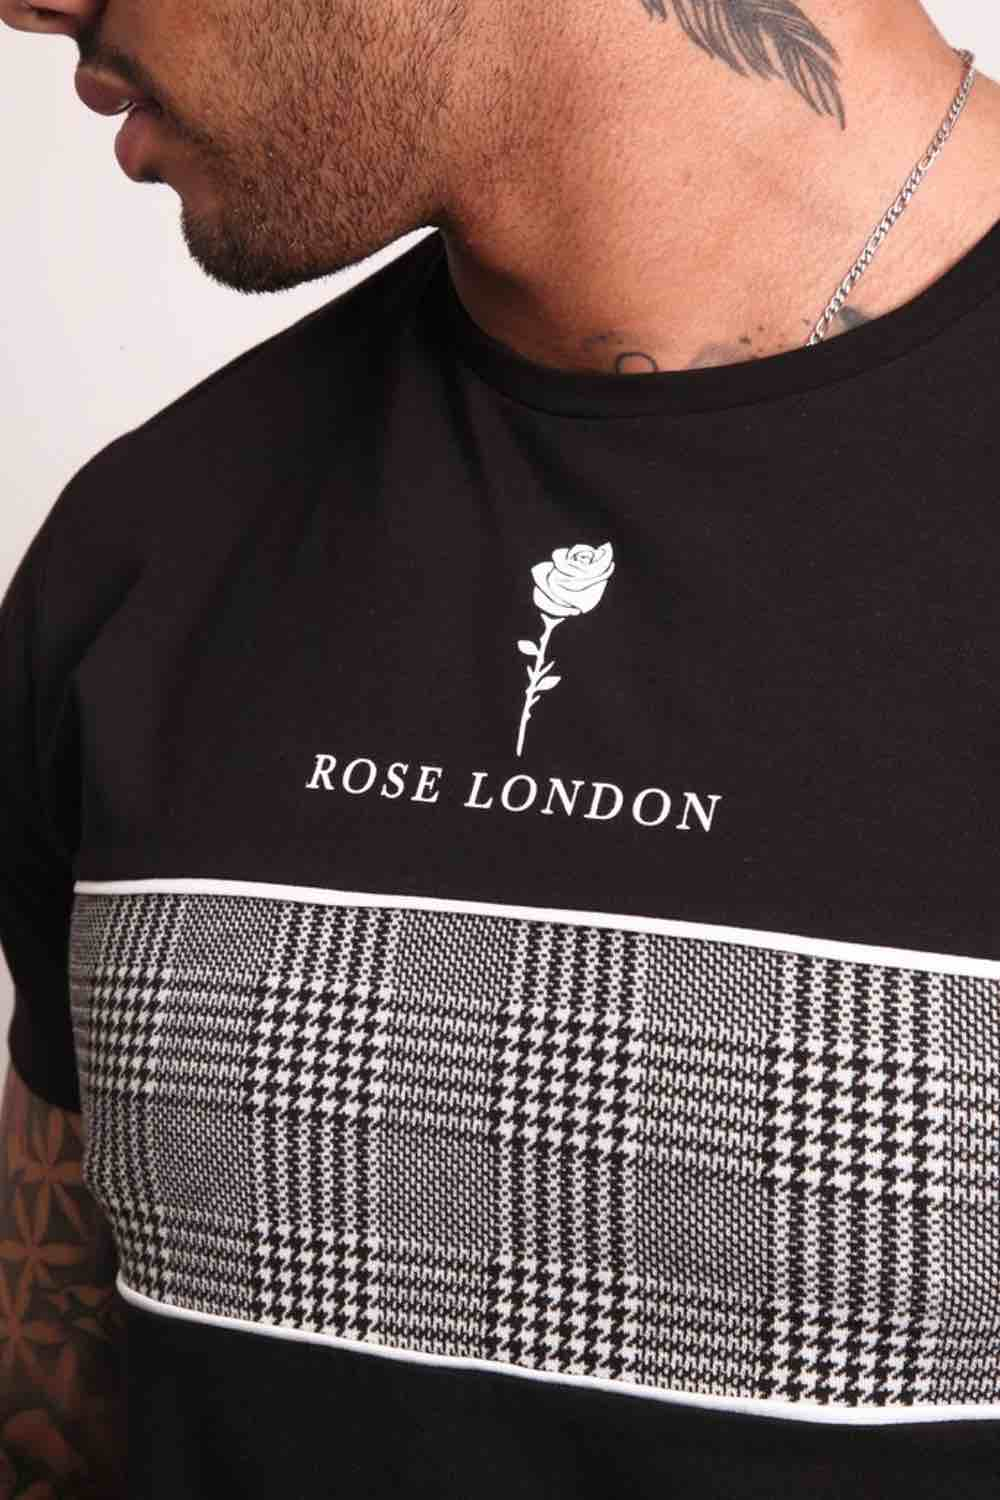 Rose London Plaid Chest T-Shirt - Black - 1